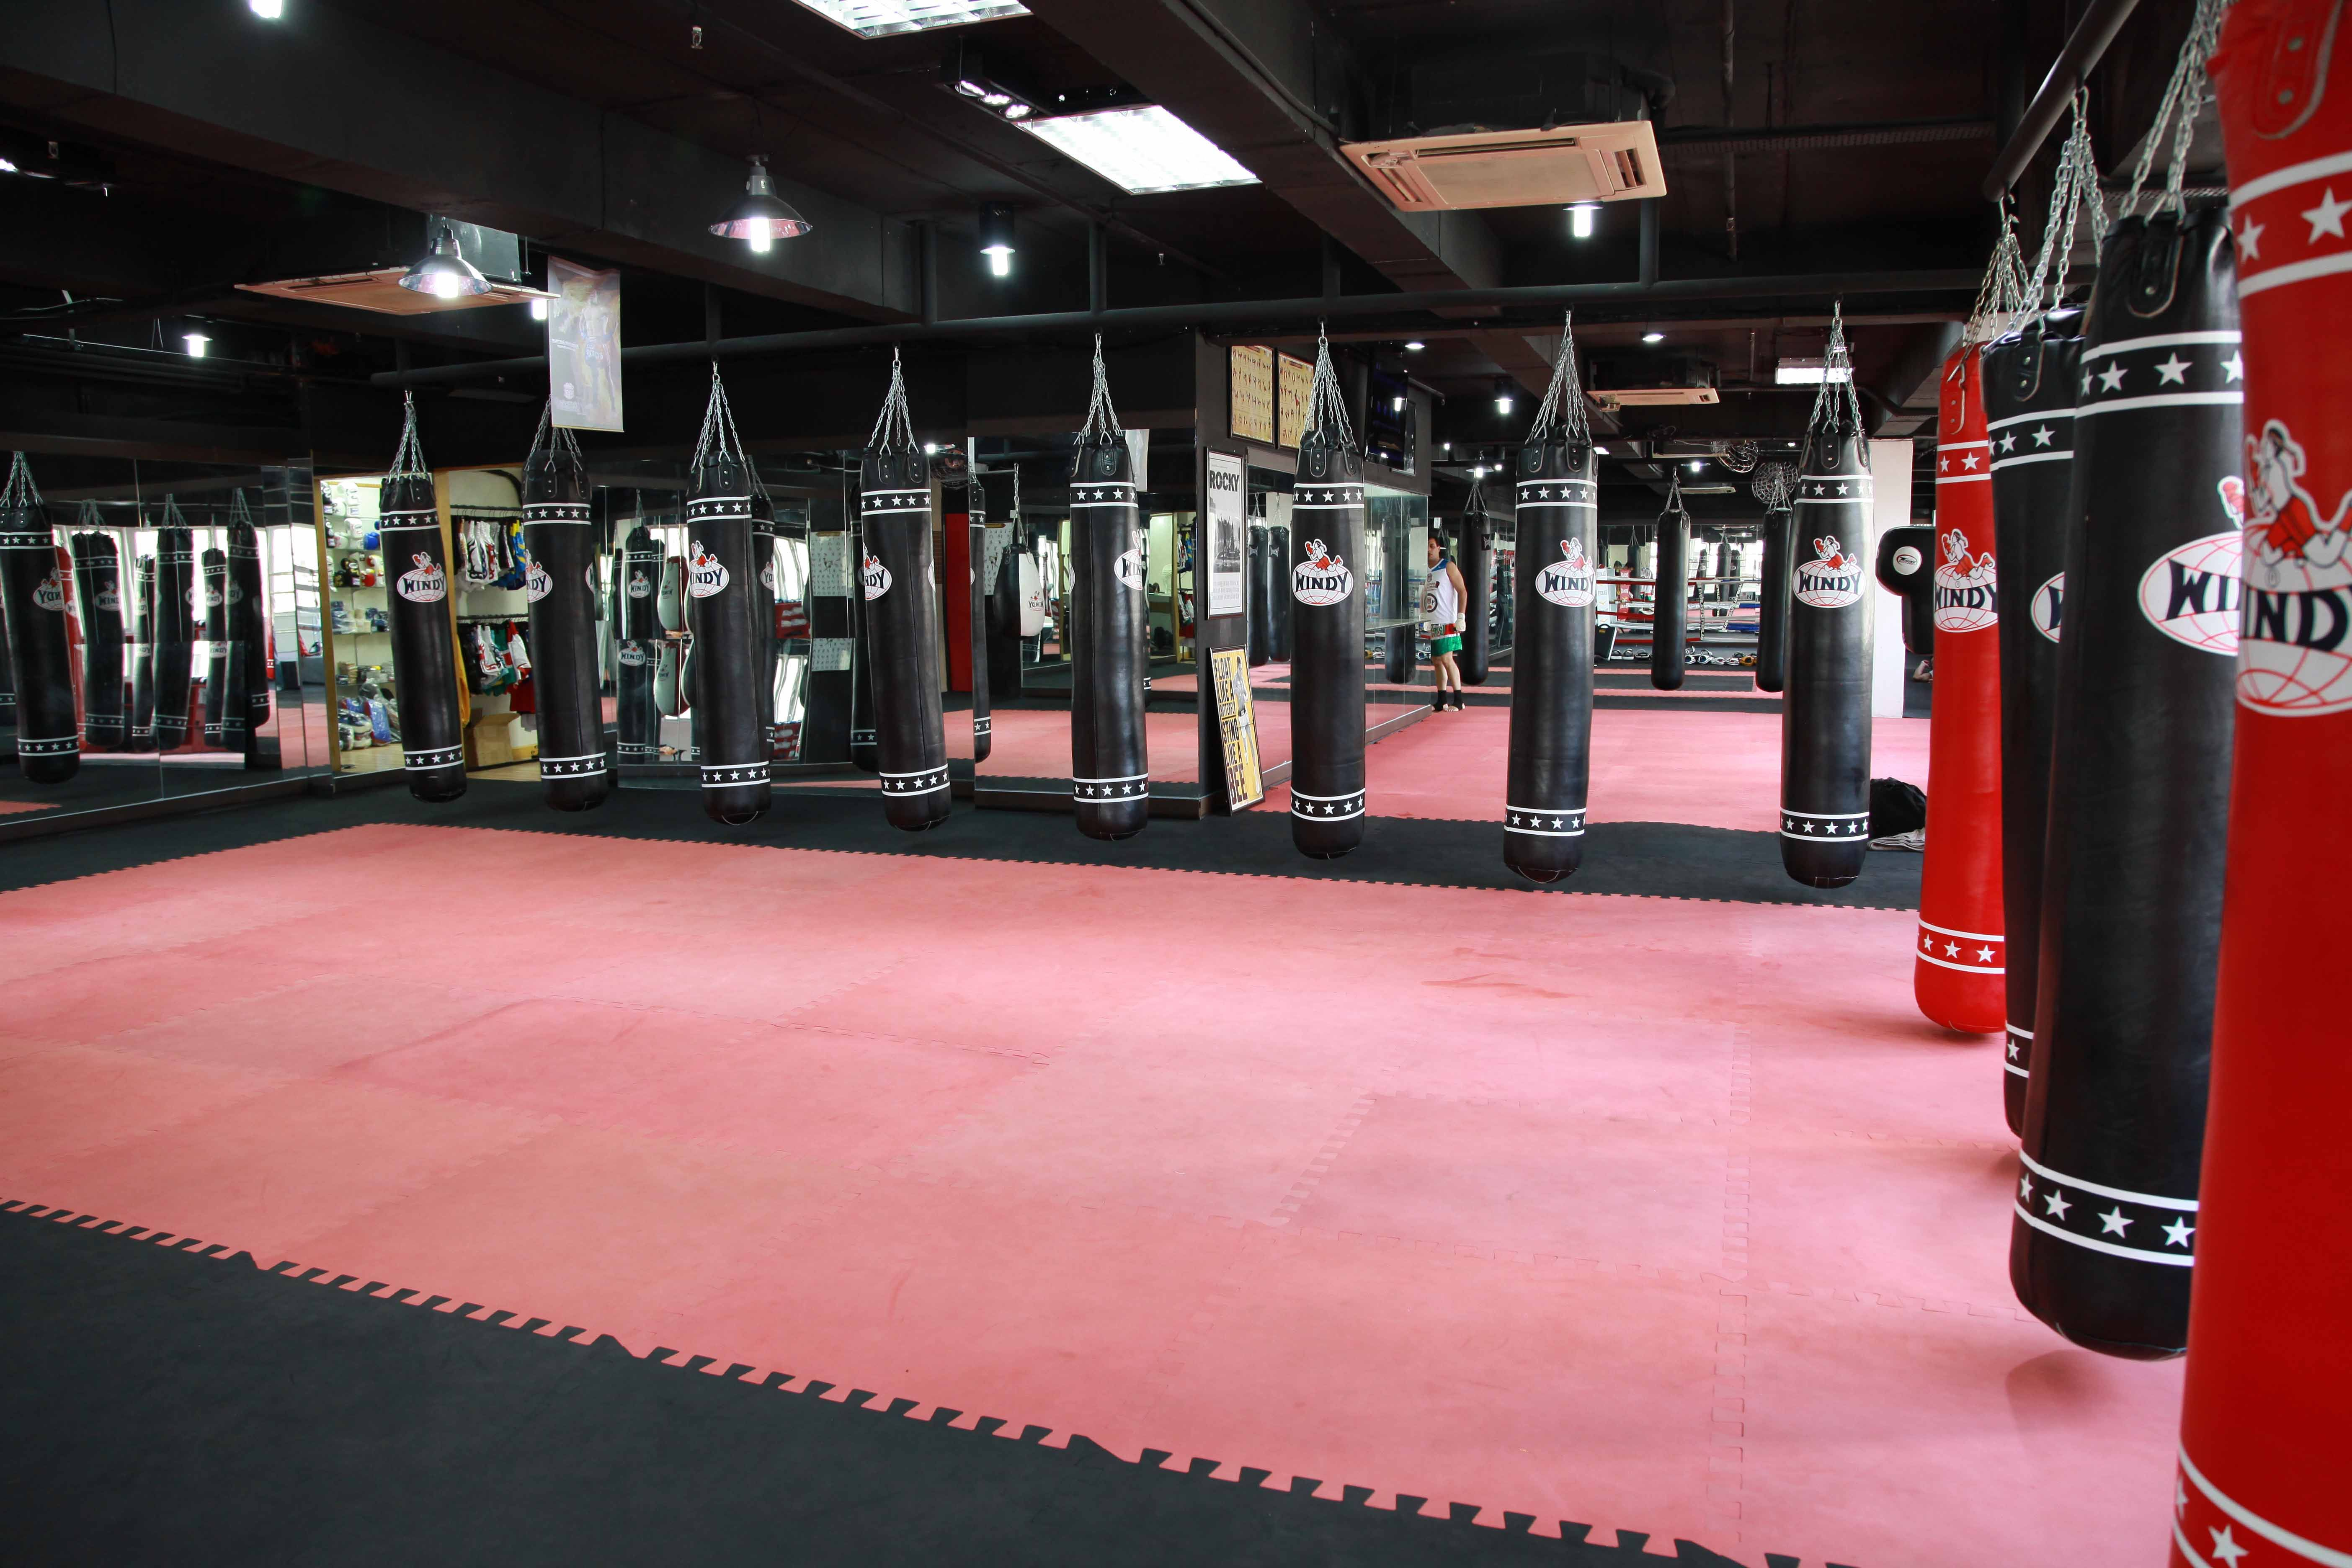 Garage converted into home mma gym by zebra mats youtube